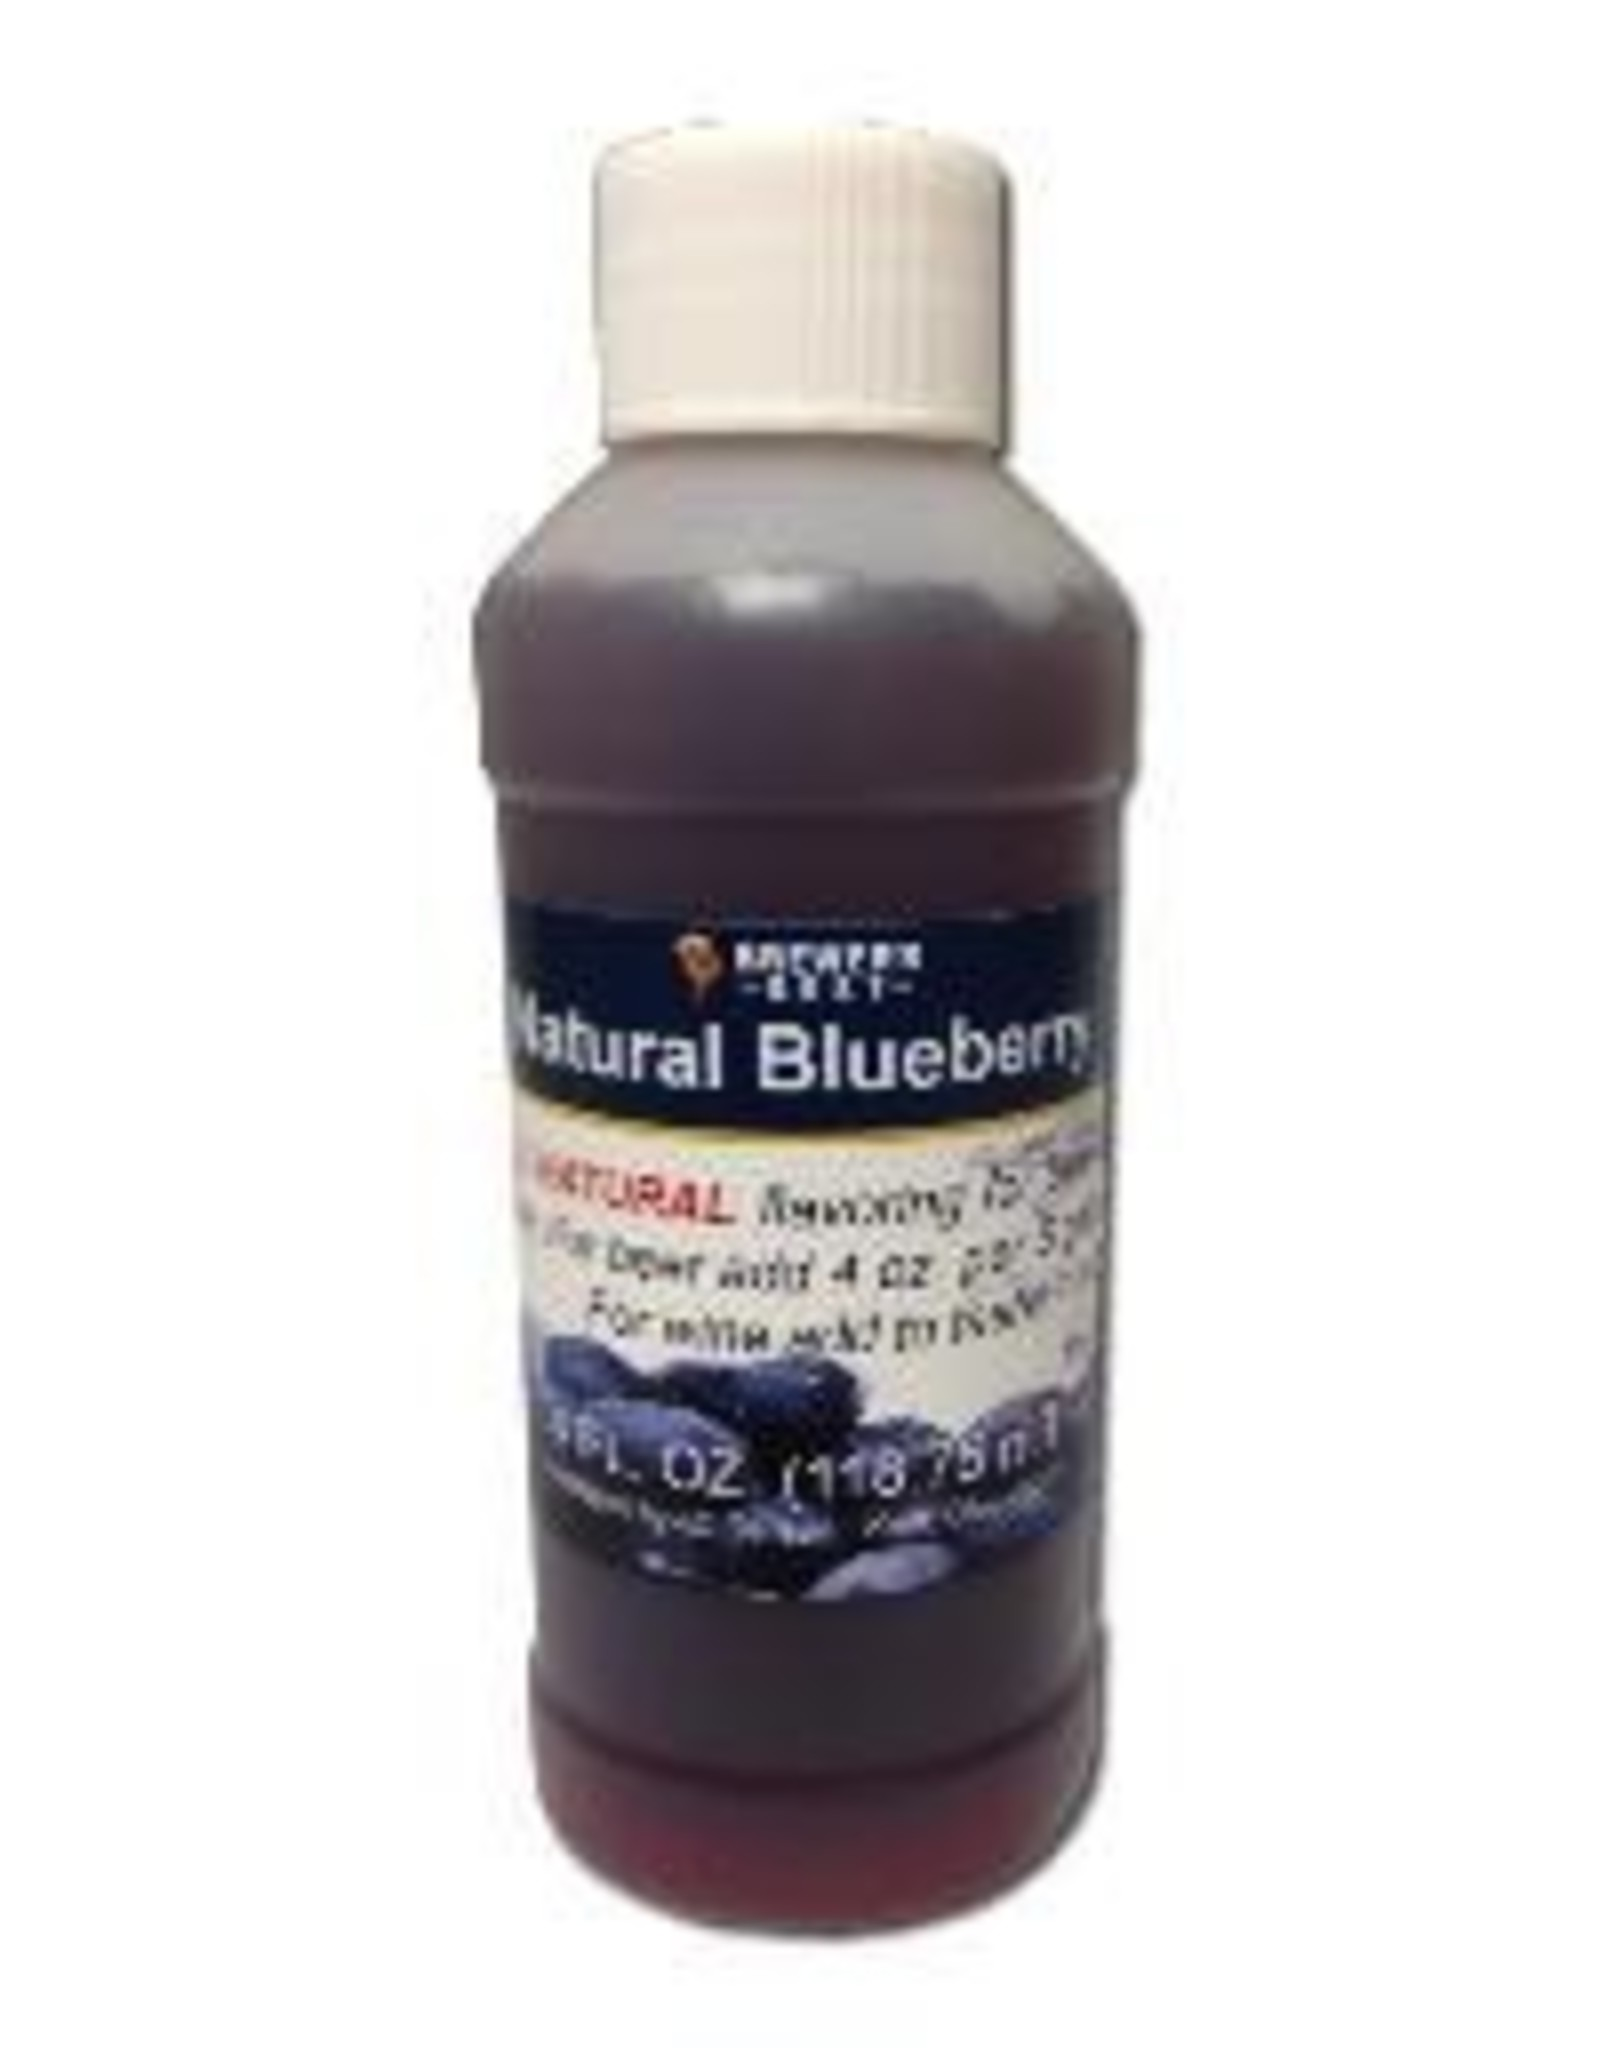 BREWERS BEST NATURAL BLUEBERRY FLAVORING EXTRACT 4 OZ